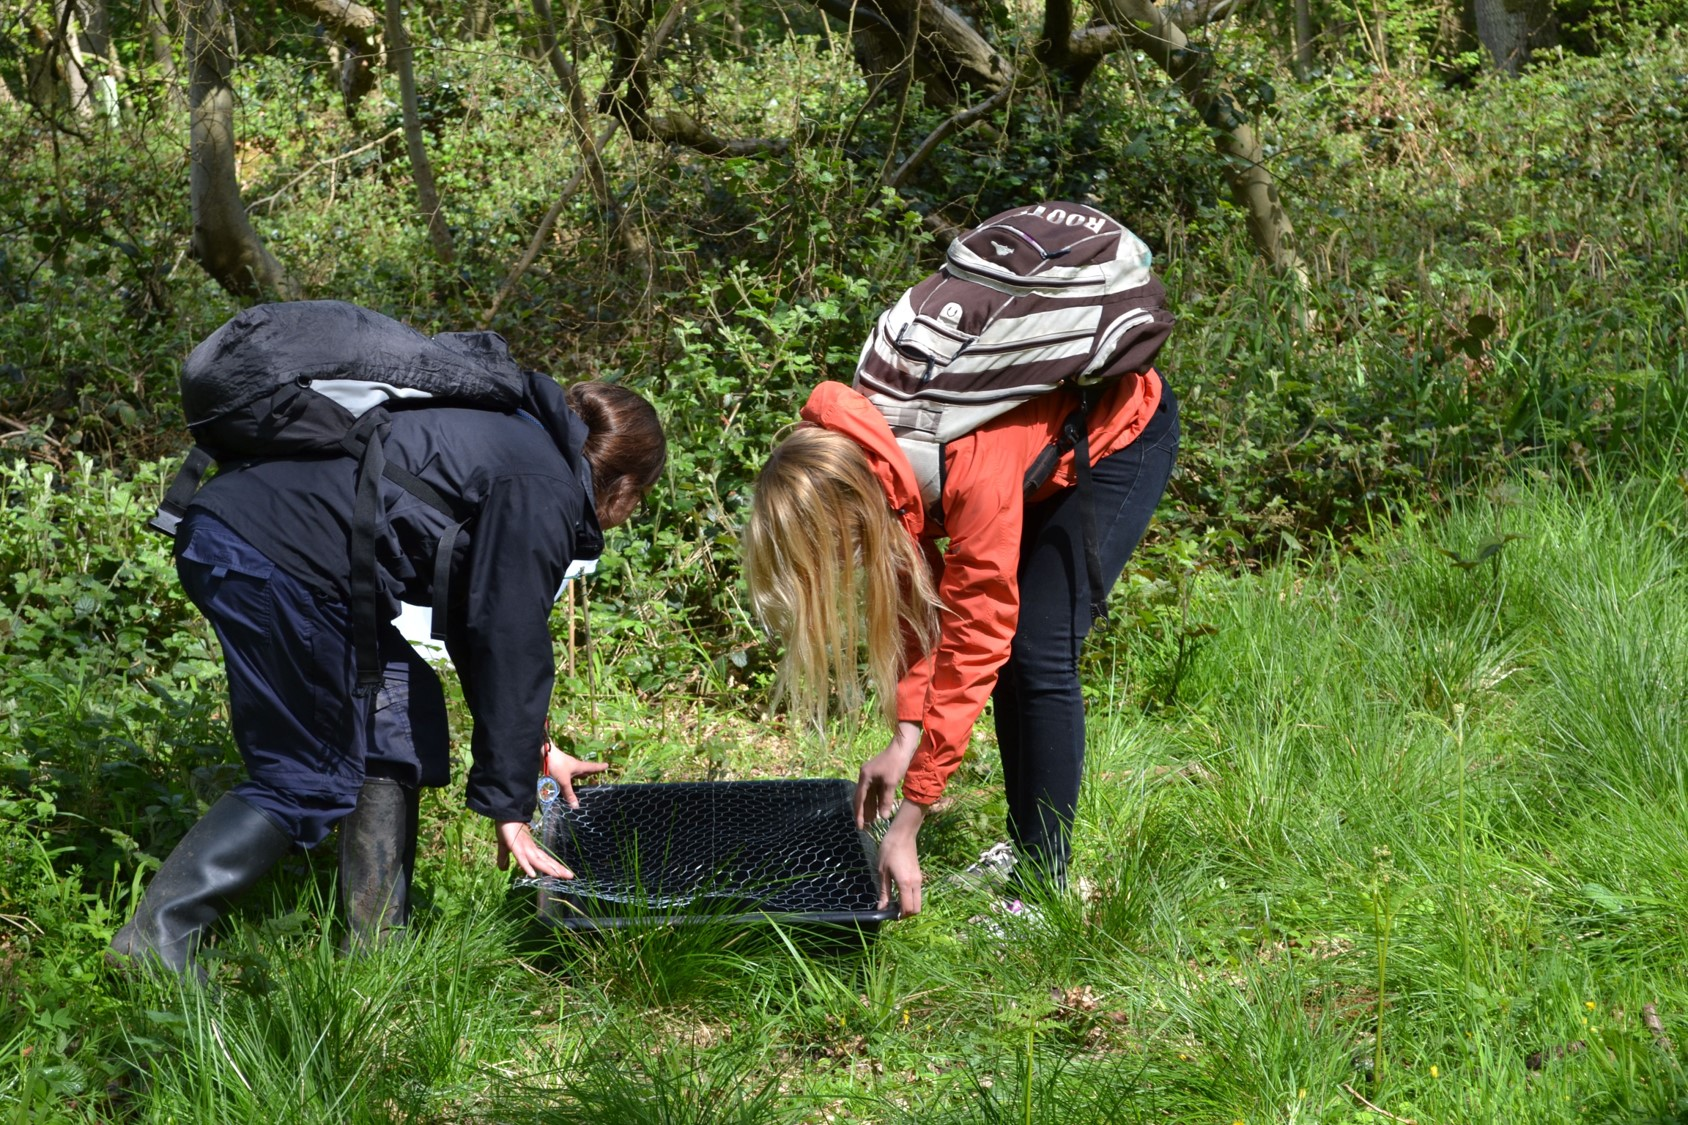 Two students wearing backpacks collecting quadrat data in a wooded area